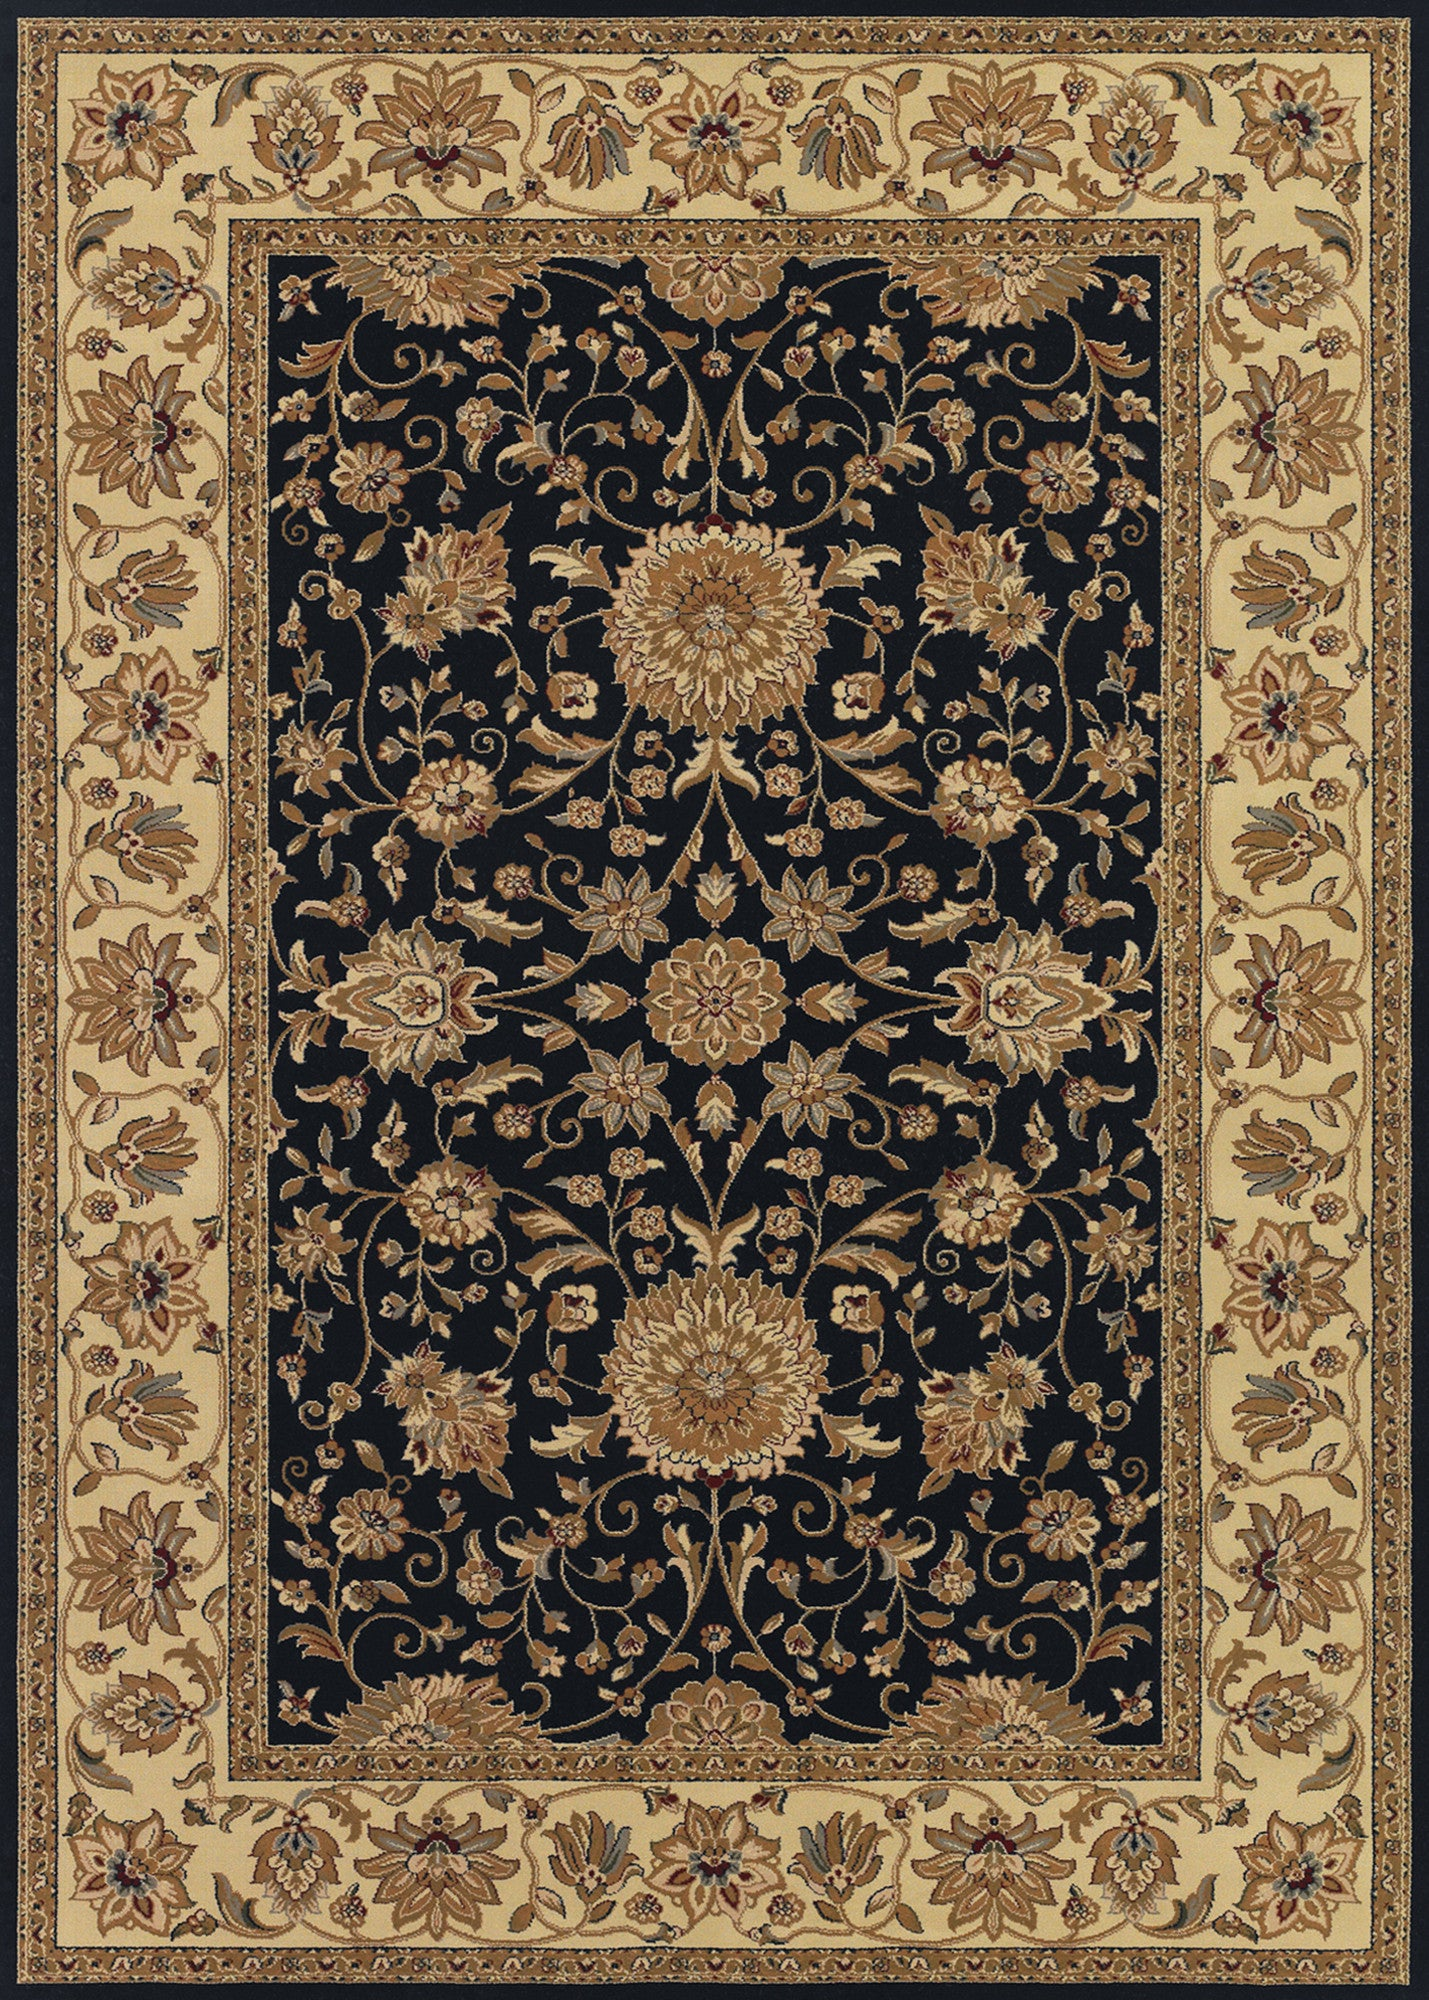 Couristan Izmir Floral Isfahan Black Area Rug Incredible Rugs And Decor